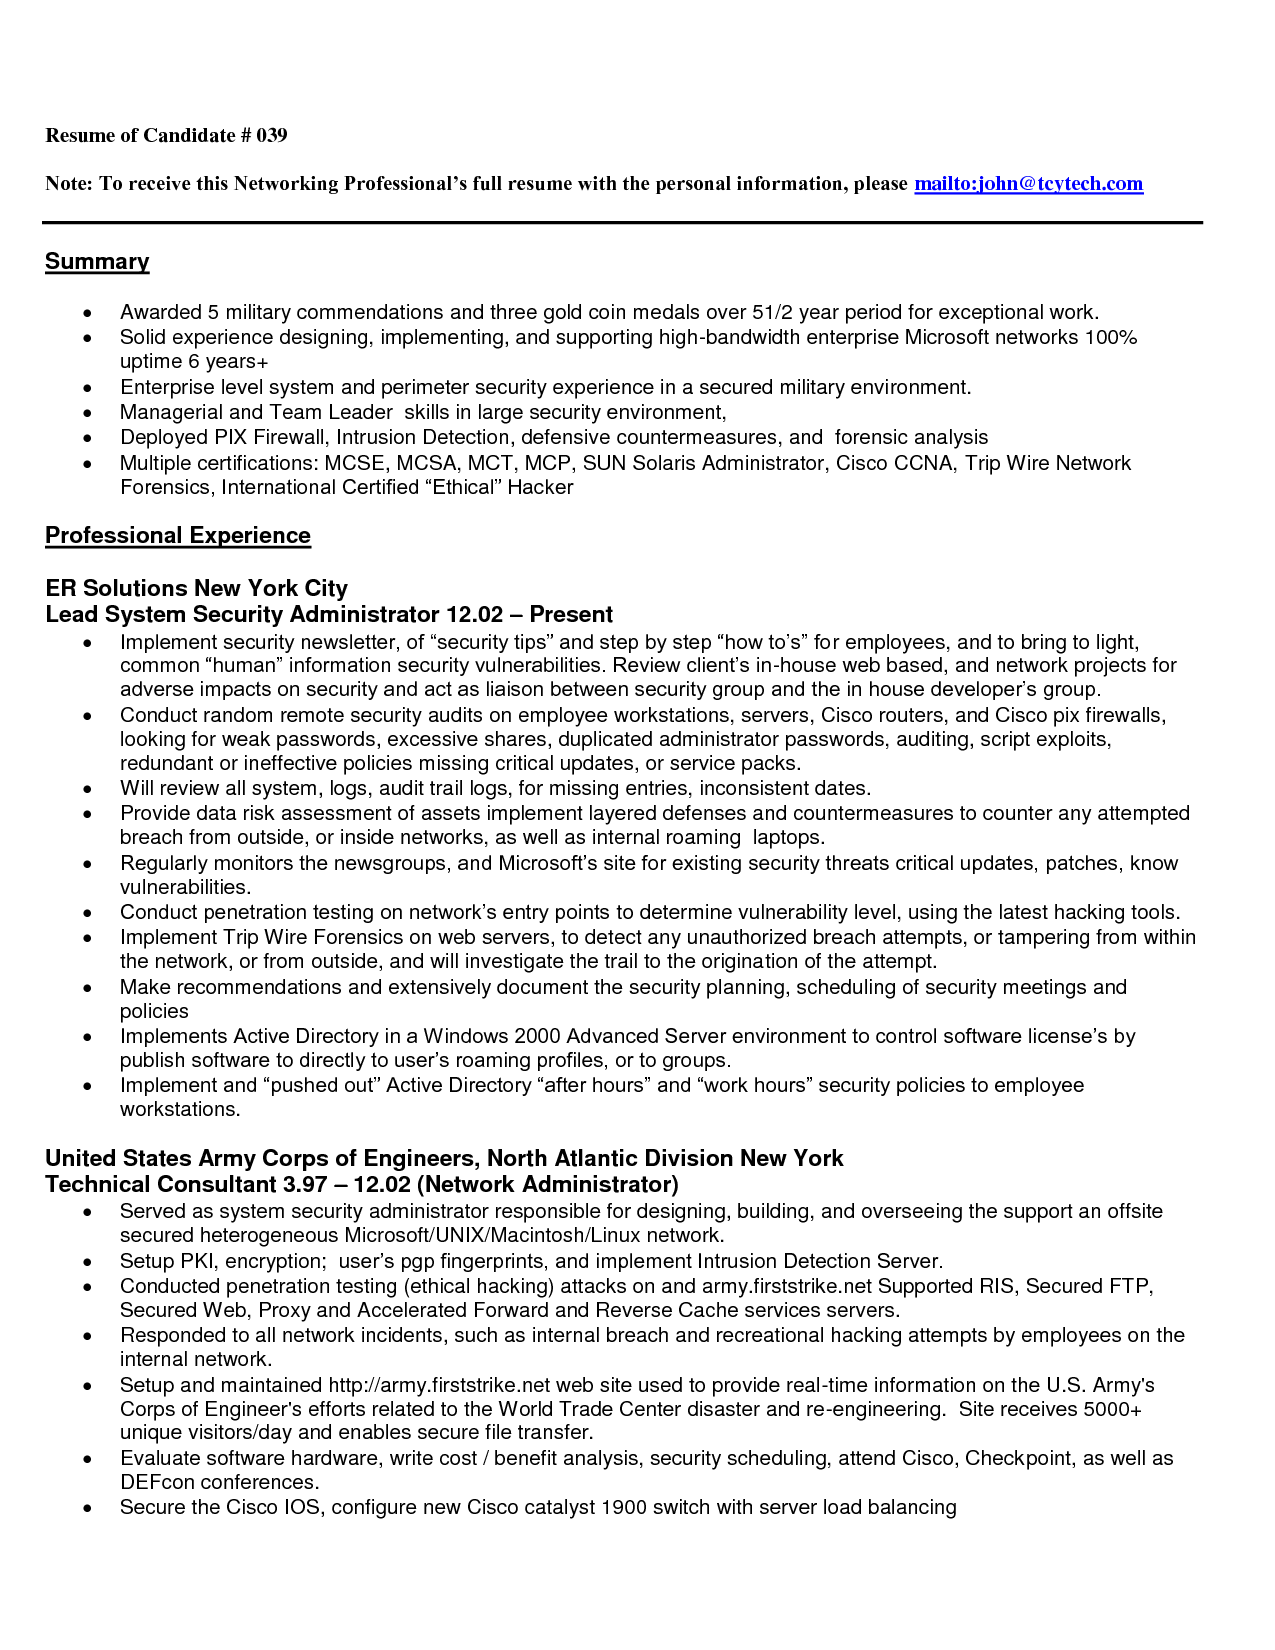 free entry level resumes samplebusinessresume com sample entry level resume templates - Sample Entry Level Resume Templates